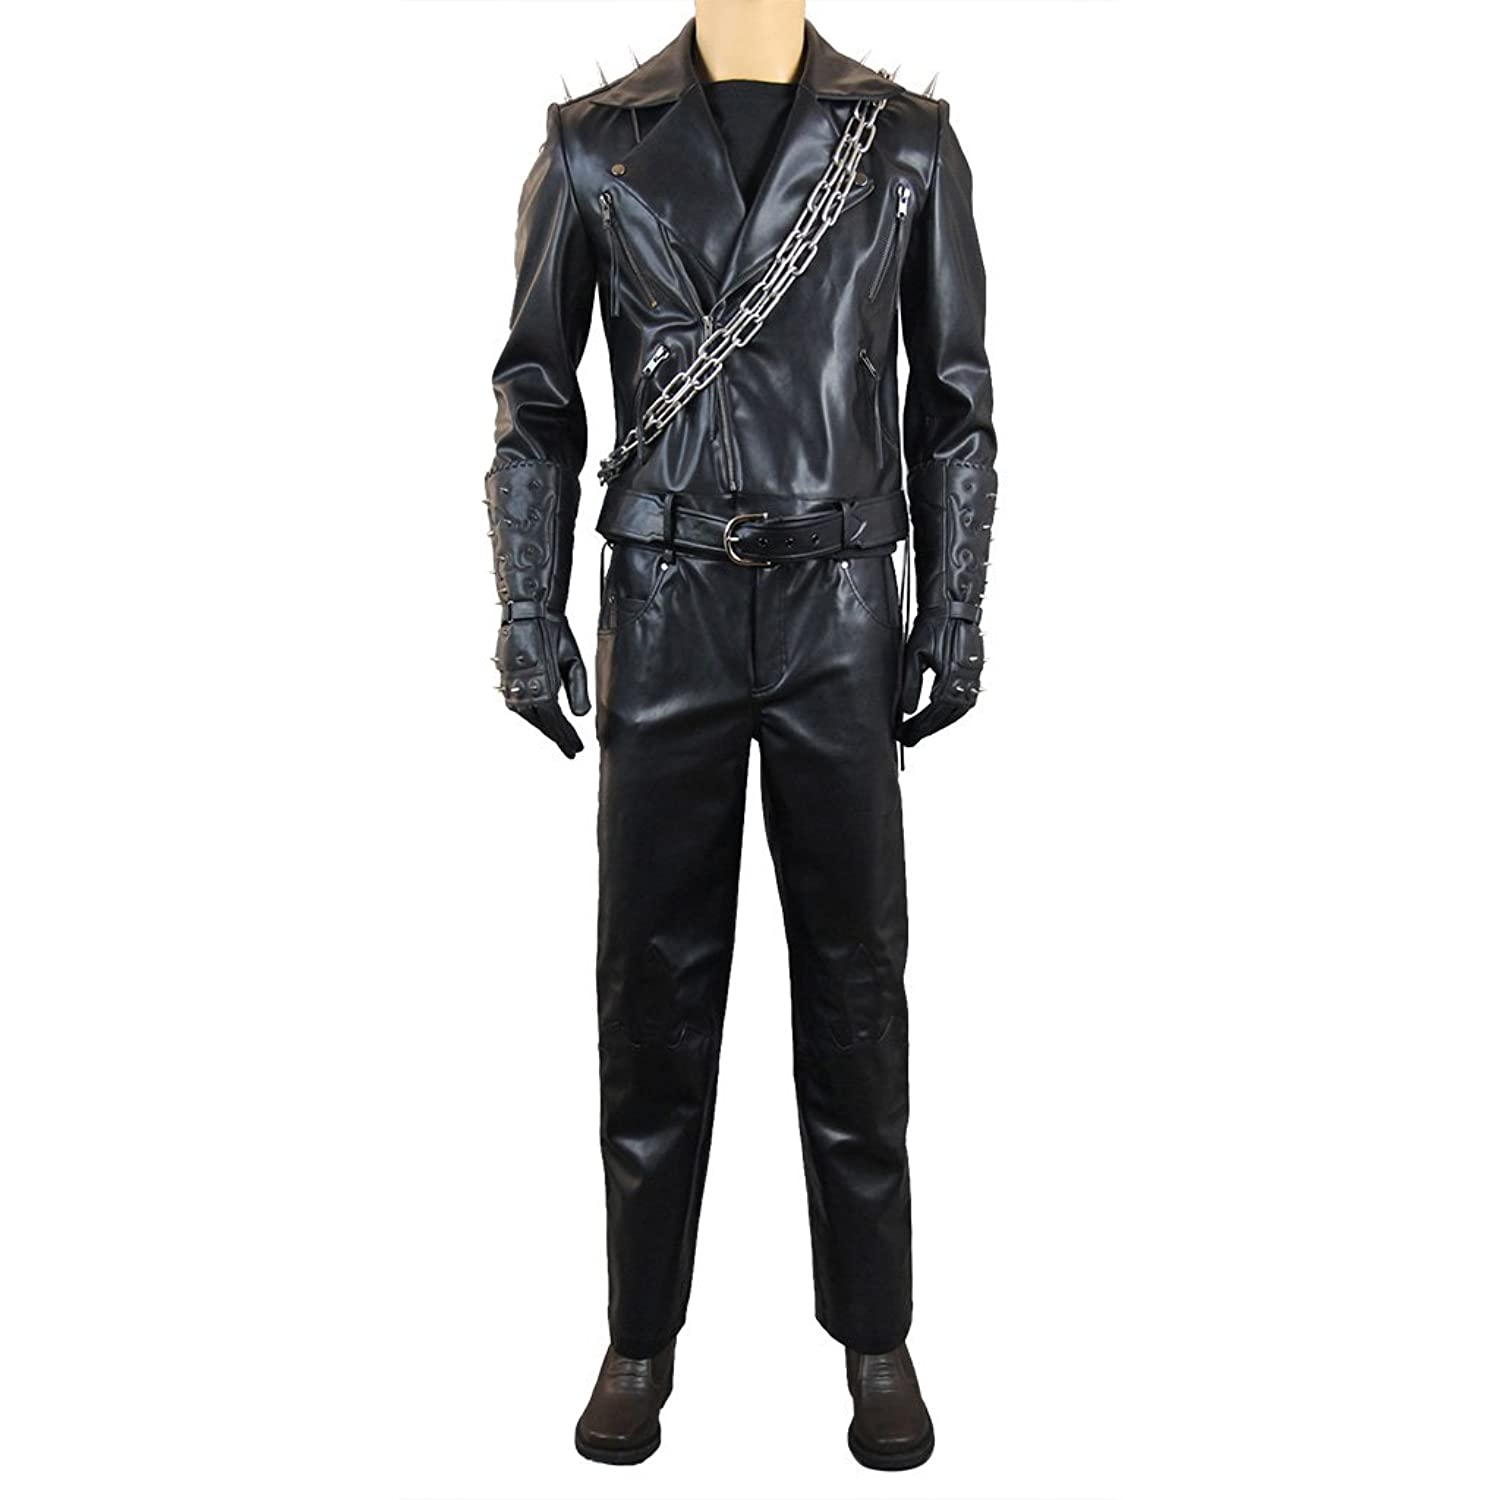 Men's Ghost Rider Cosplay Costume Johnny Blaze Leather Outfit